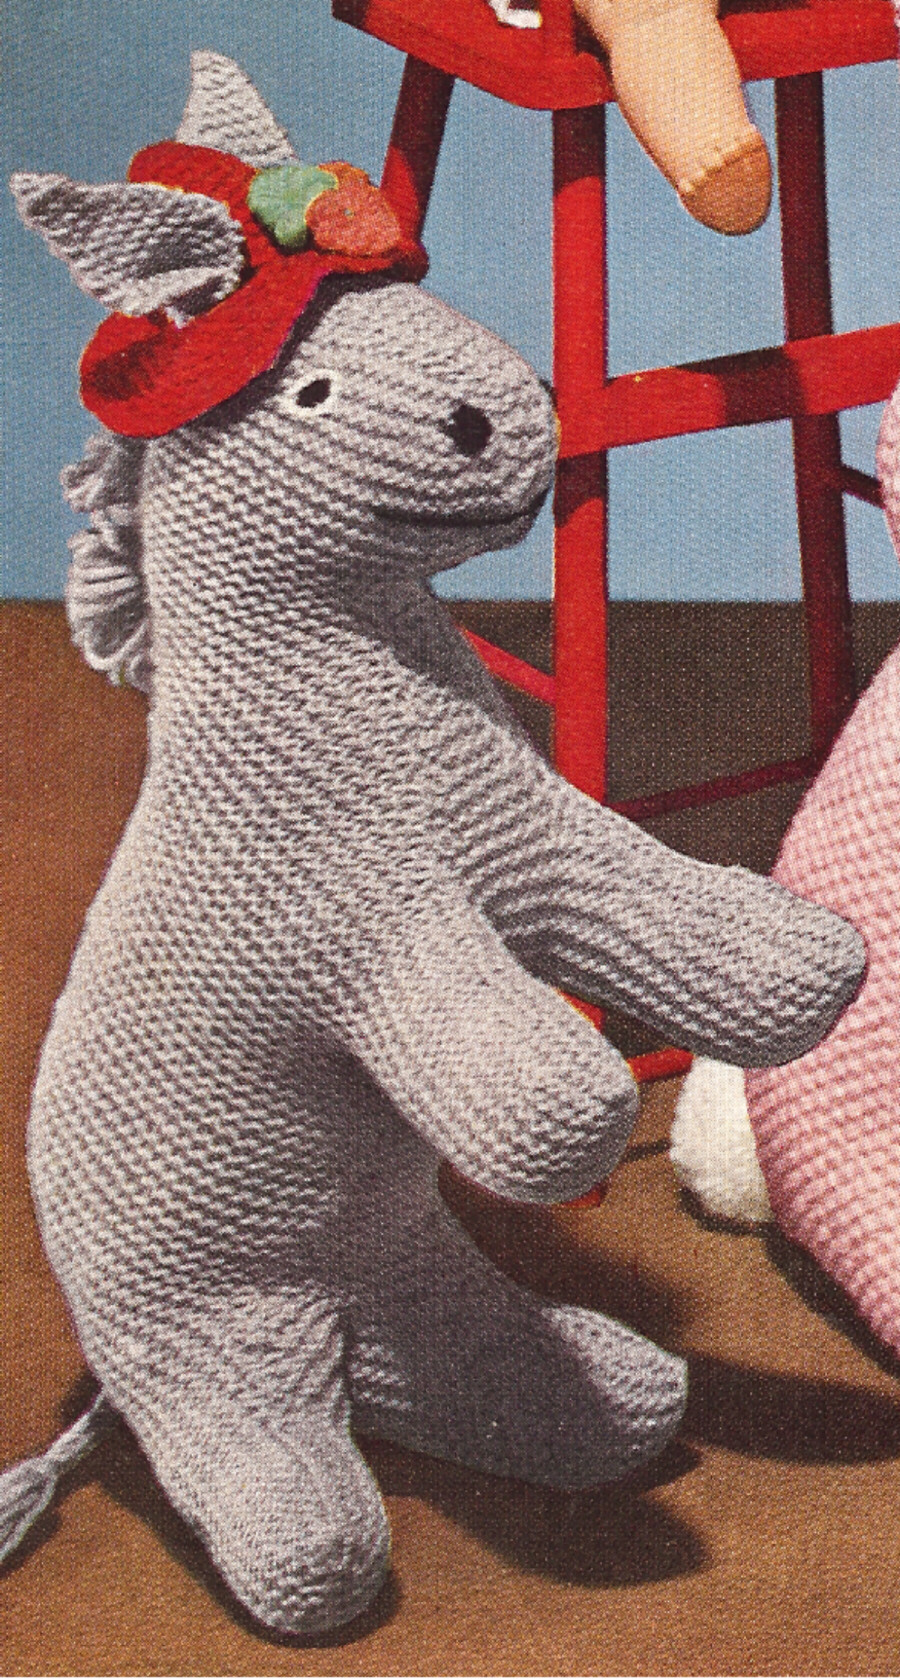 Knitting Pattern For Donkey Hat : Vintage Knitting PATTERN to make Donkey Foal Stuffed ...